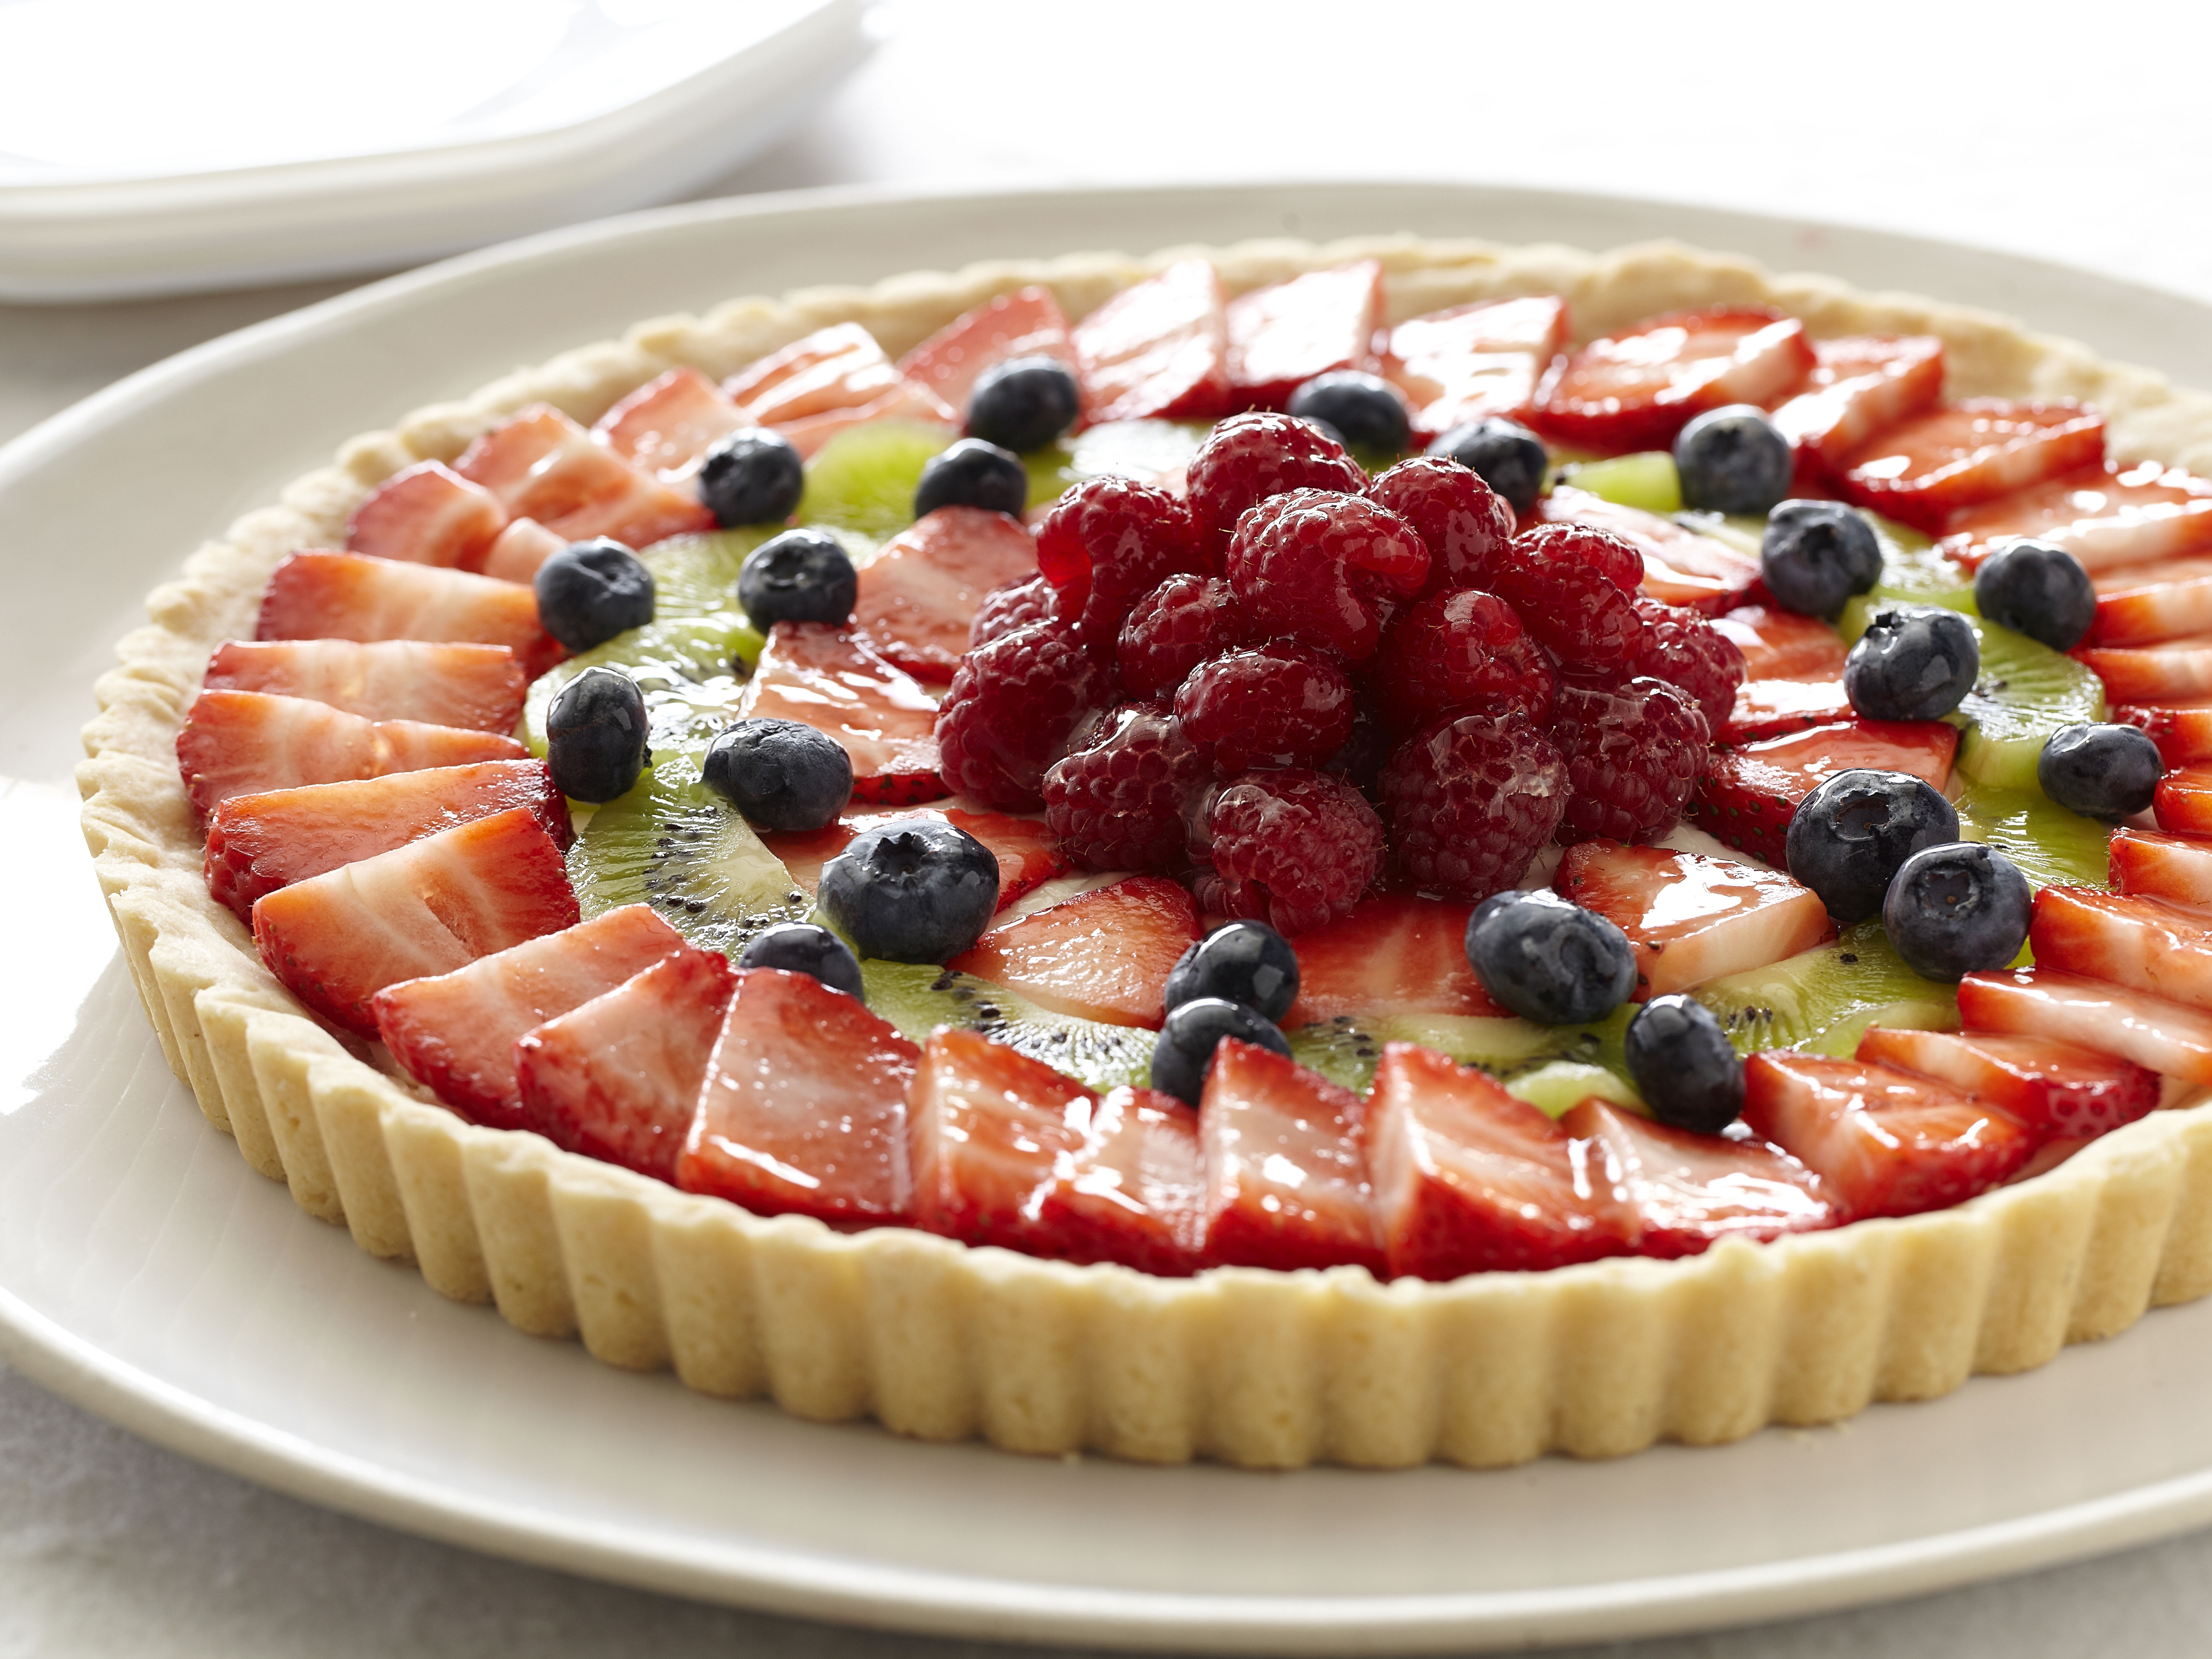 Healthy Fresh Fruit Desserts  Healthy Desserts Happy and Healthy Recipes